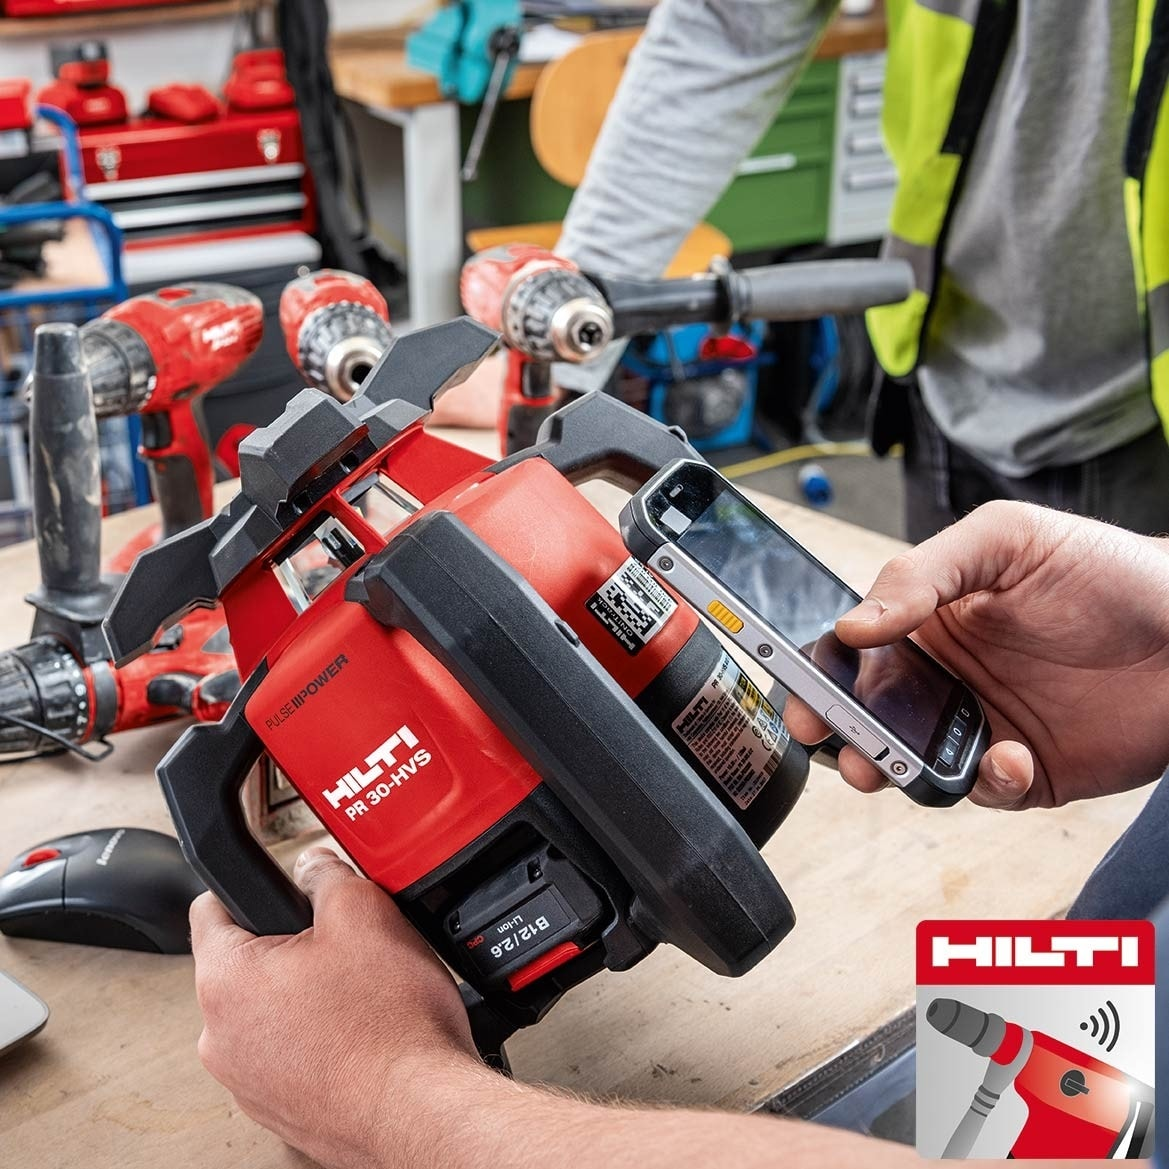 Hilti Connect App brings hassle-free tool services to your fingertips. Download from the App Store and Google Play